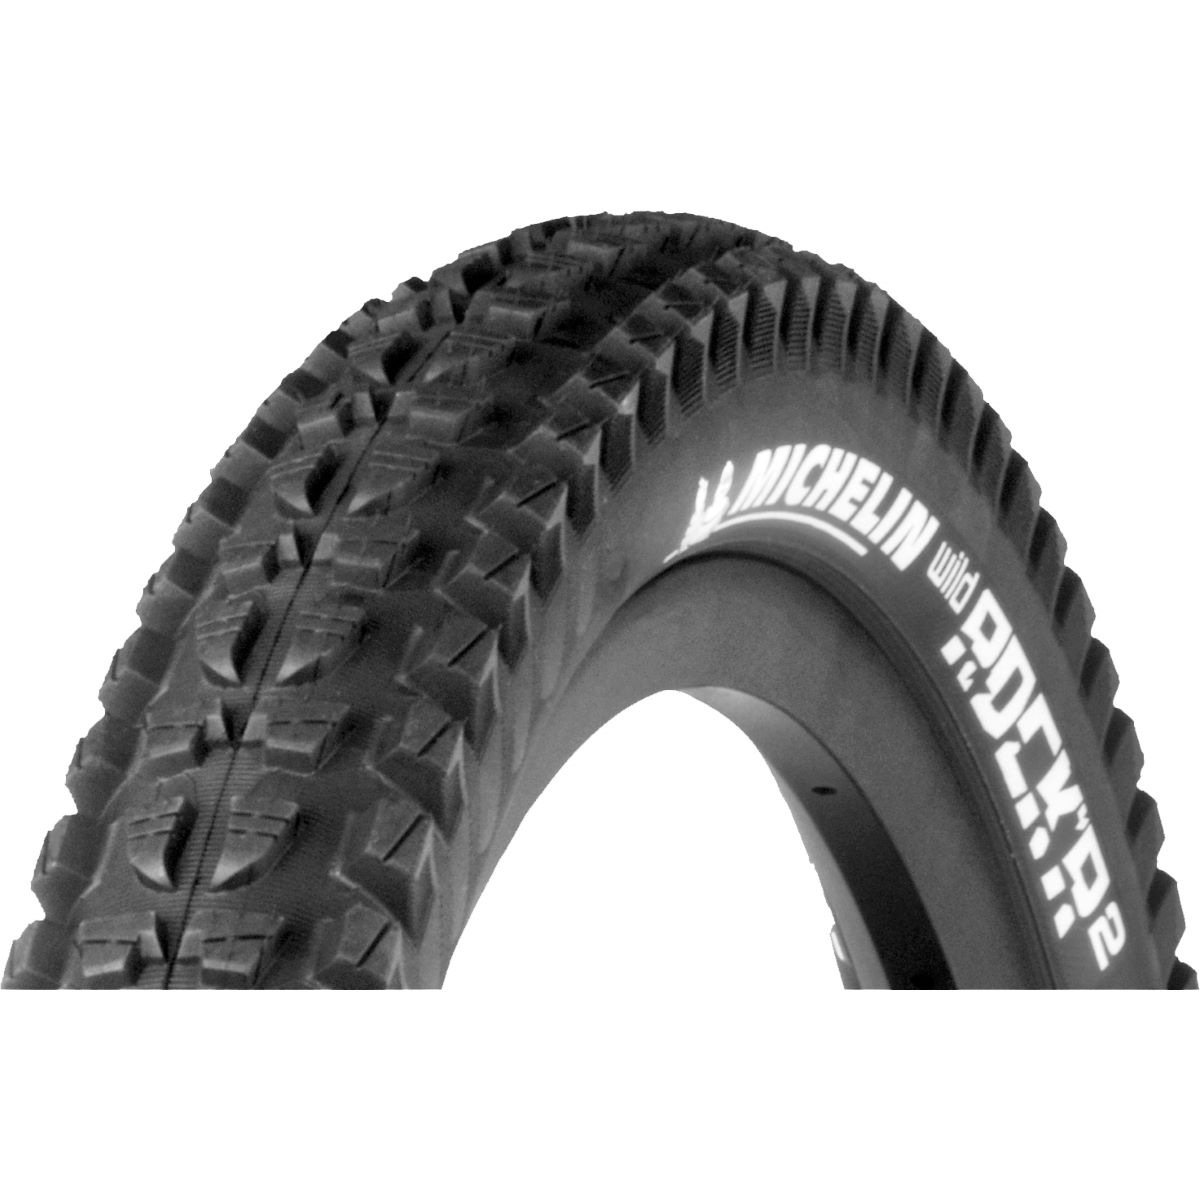 Pneu Michelin Wild Rock'r2 Advanced Reinforced Gum-X 29 pouces - Noir